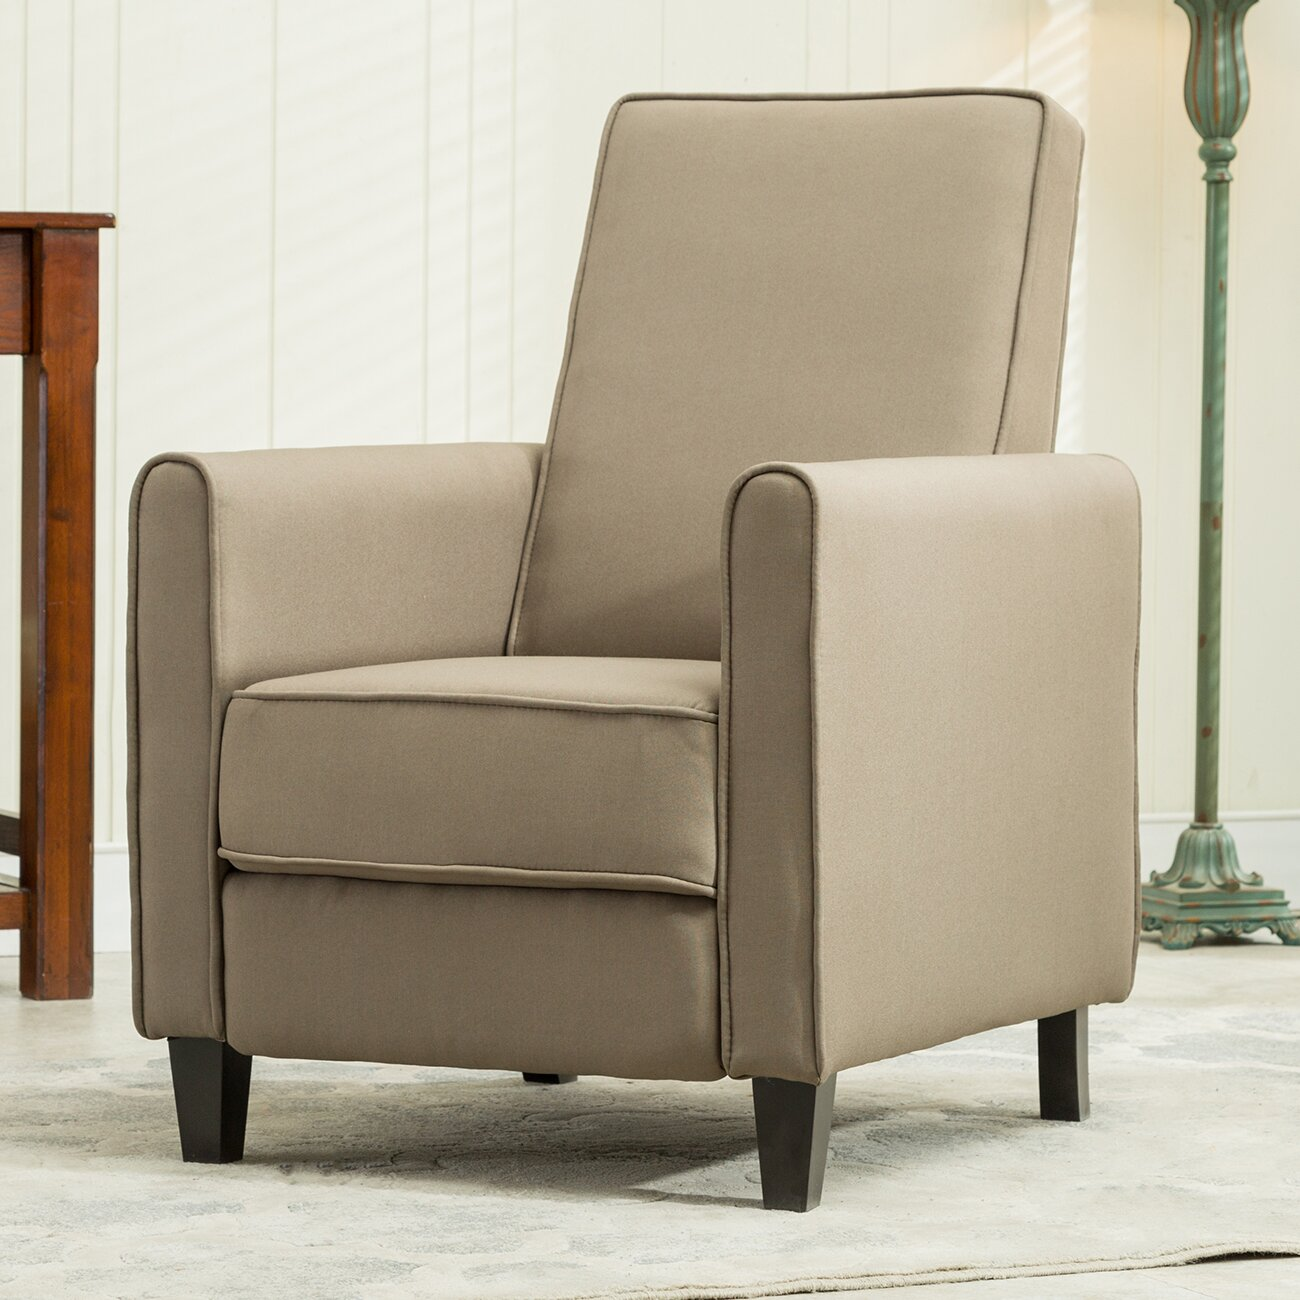 Club chair recliner - Kierra Modern Living Room Club Recliner